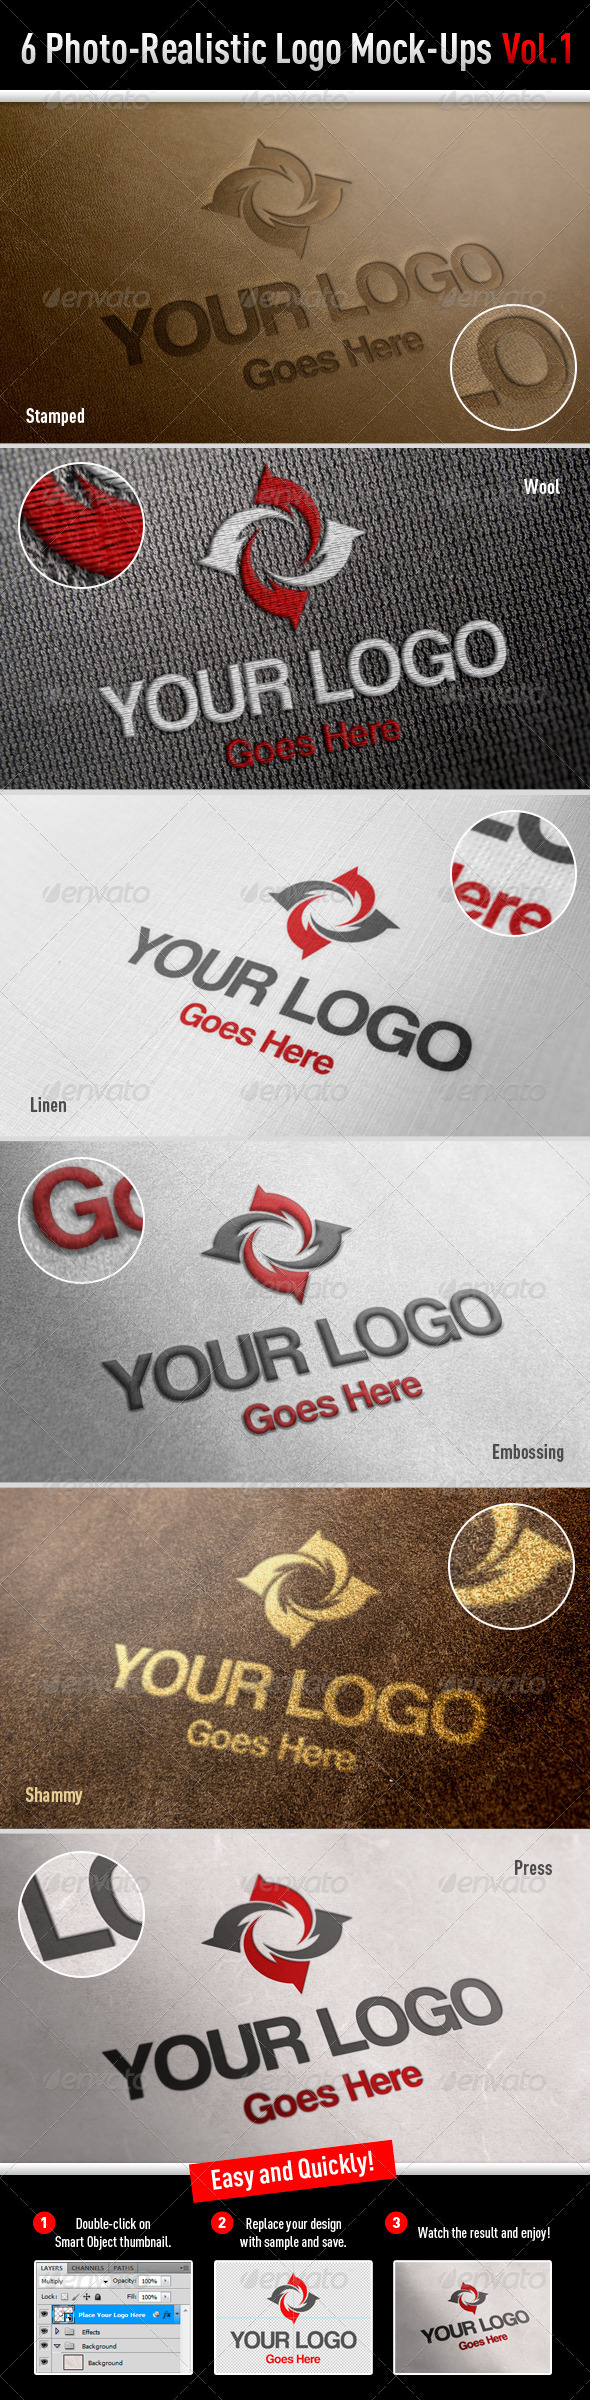 6 Photo-Realistic Logo Mock-Ups Vol.1 - Logo Product Mock-Ups